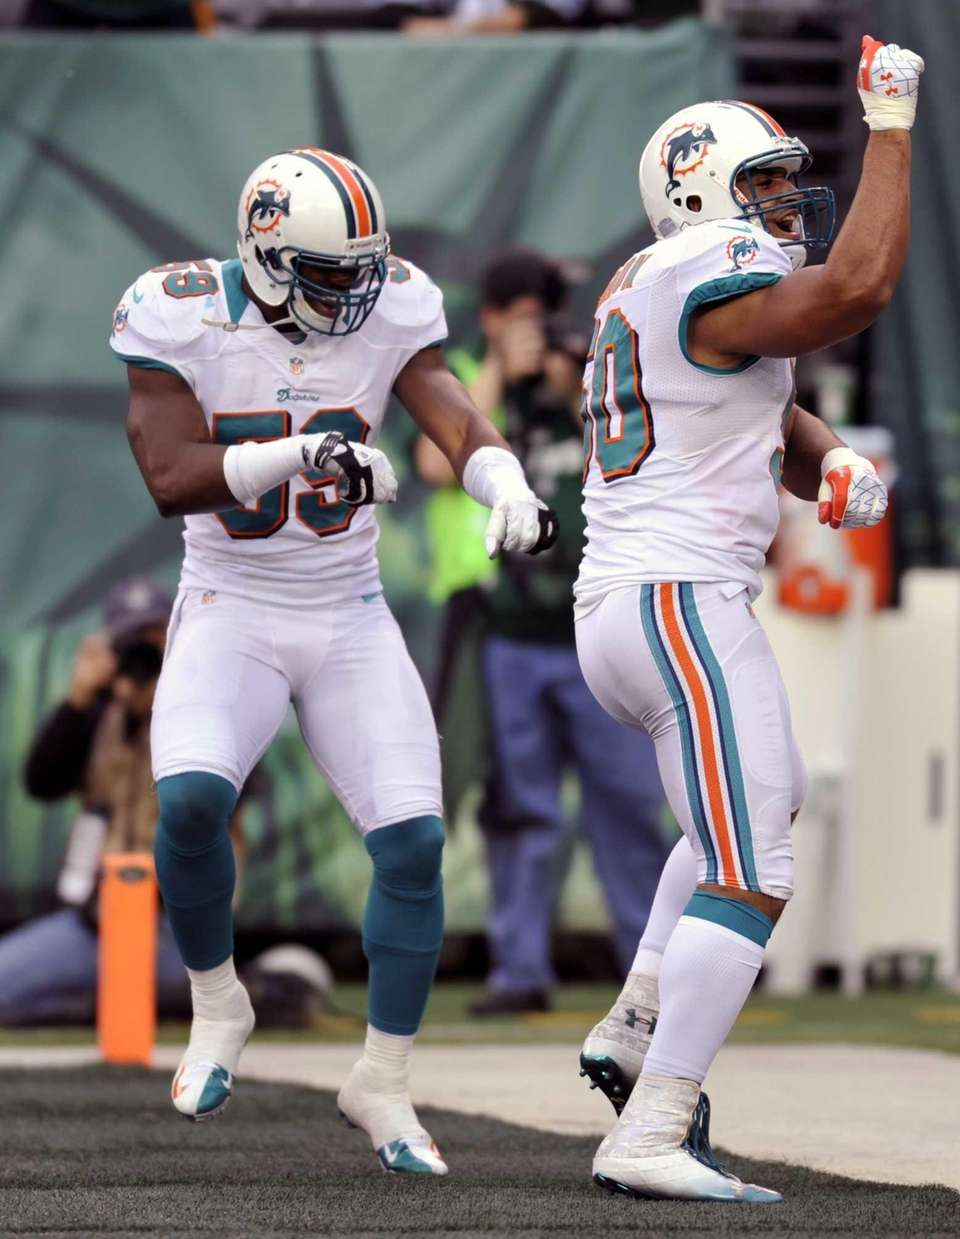 Miami Dolphins' Olivier Vernon (50) celebrates with teammate